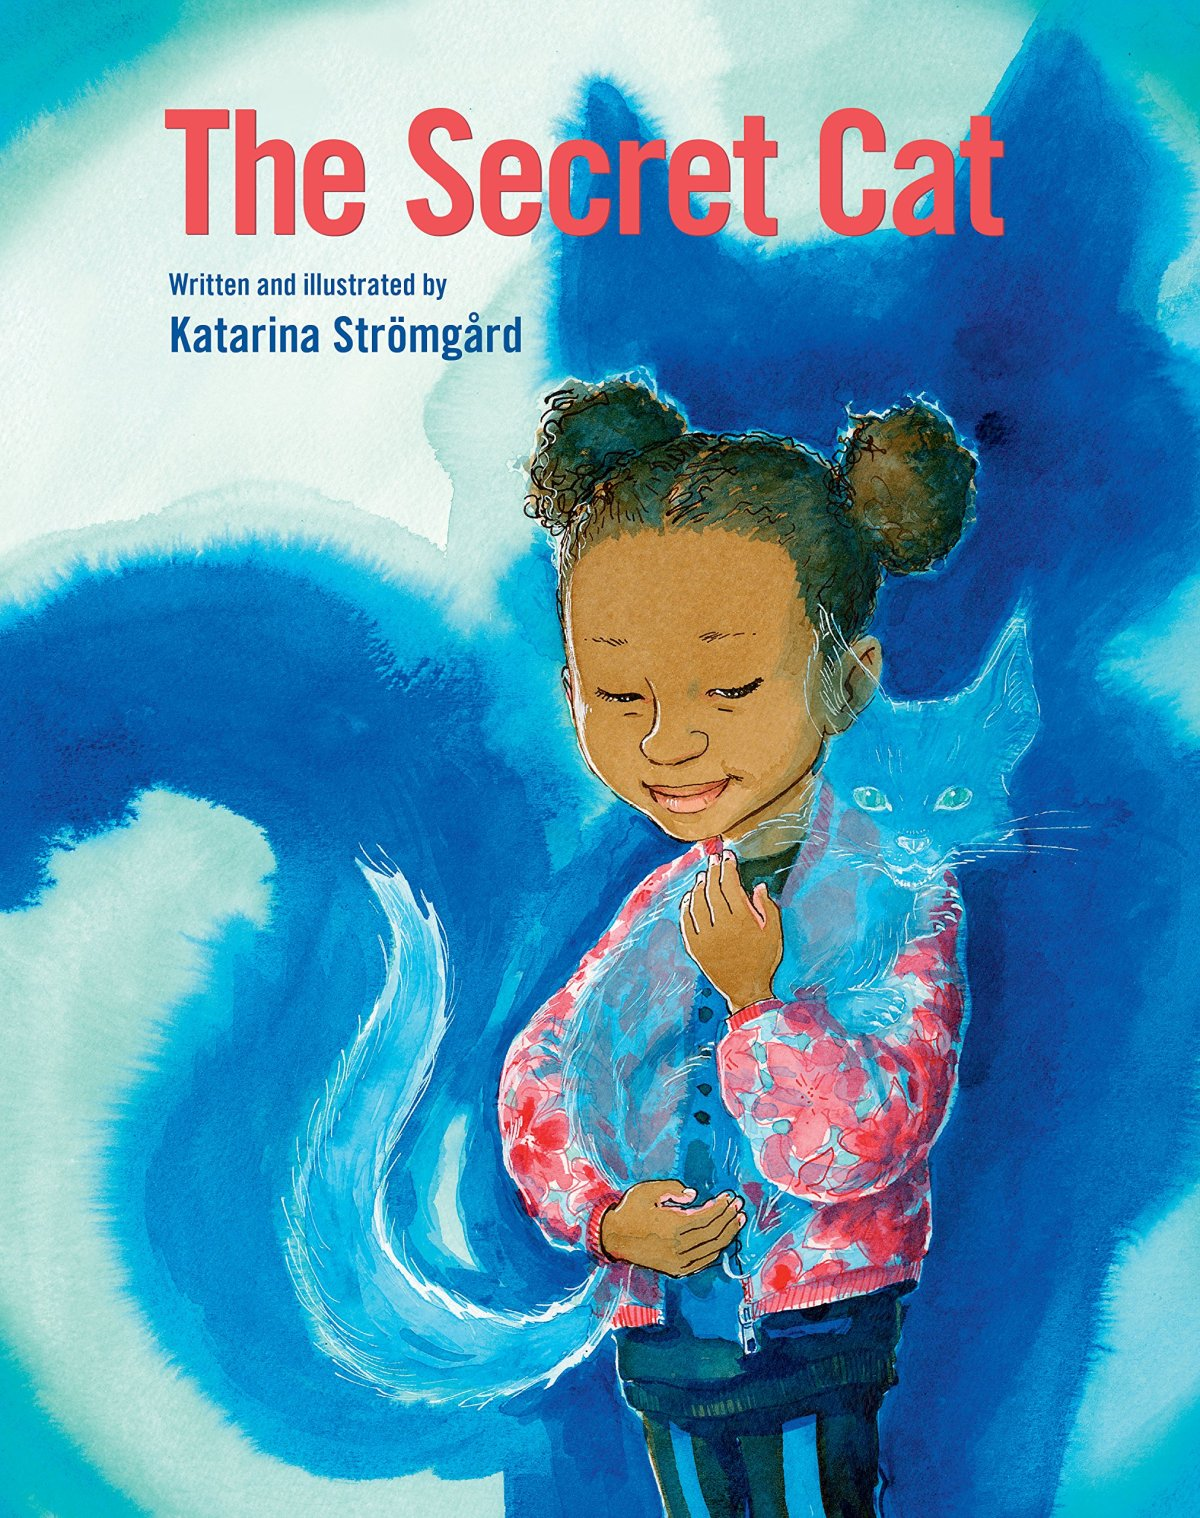 the secret cat cover image